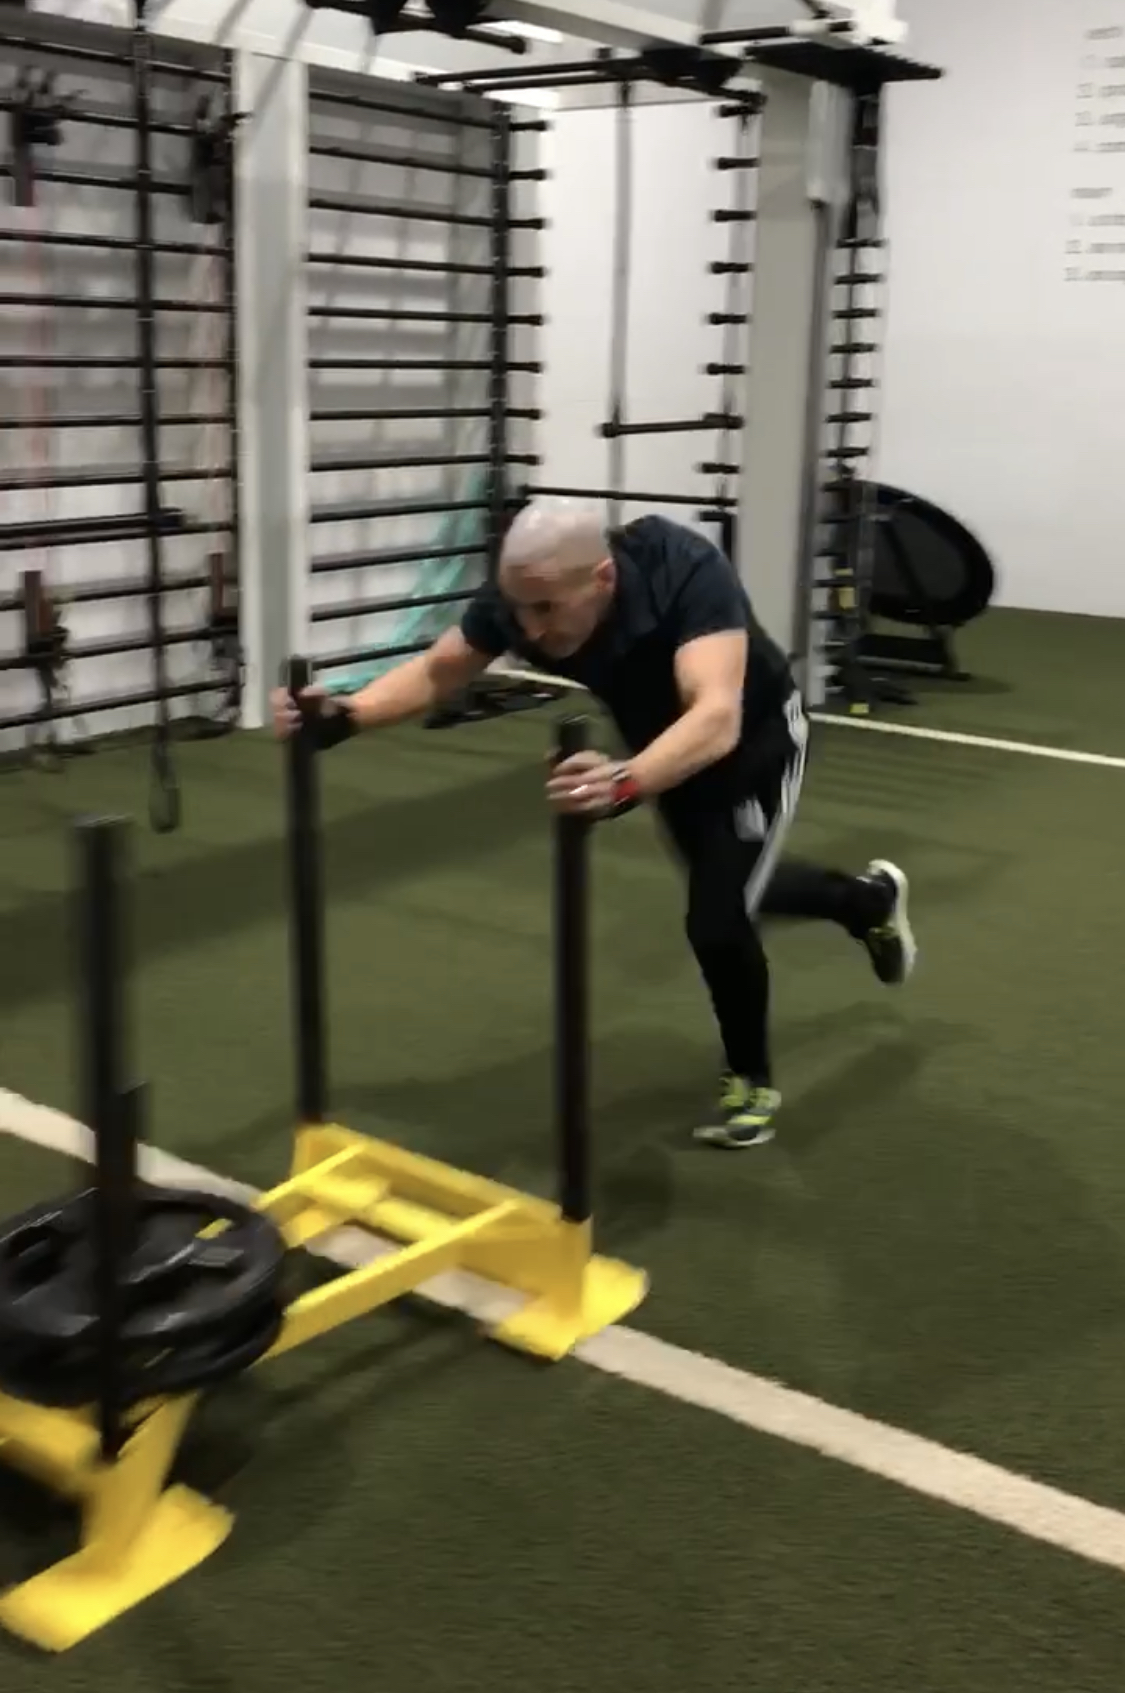 Pushing a weight cart is an extremely effective way to quickly bring aerobic capacity to the next level. Here is Dr. Wald pushing the cart 4 efforts consecutively. -